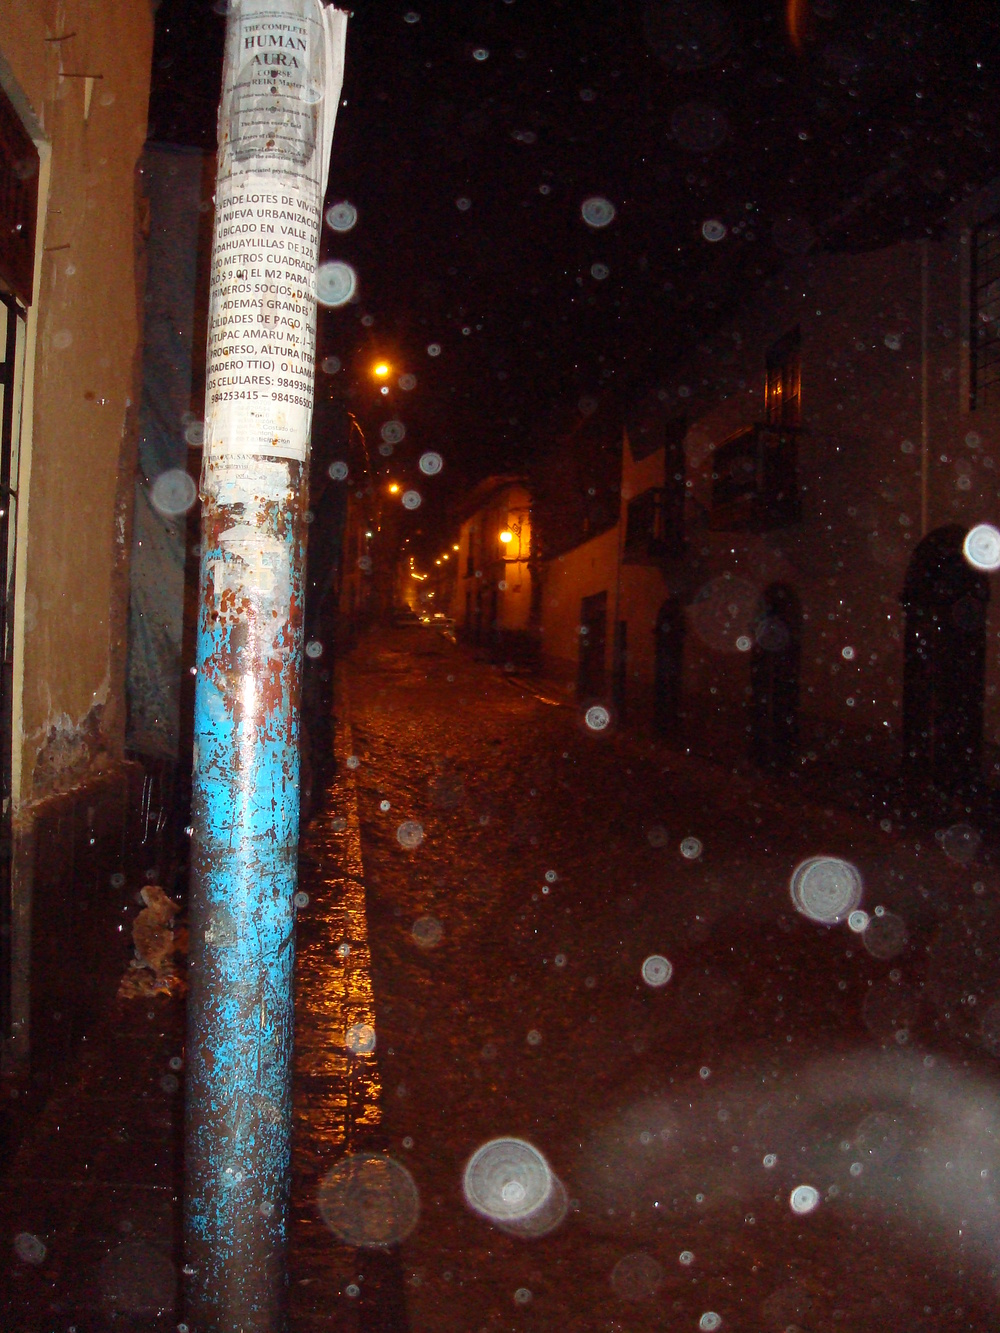 A photo taken by Ami while were both still living down in  Cusco Peru  during my  travel experience  of my  Jaunt Down South 2010. It showcases how during the rainy season in Cusco Peru, the rain really pours down and the streets turn to rivers. During the peak of the rainy season (i.e. December to February) it can have an average of 133.9 inches receiving 401.7 inches of precipitation of the expected annual 707.8 inches per year in just those three months. Read the Wikipedia Article for more information regarding  Cusco's climate .